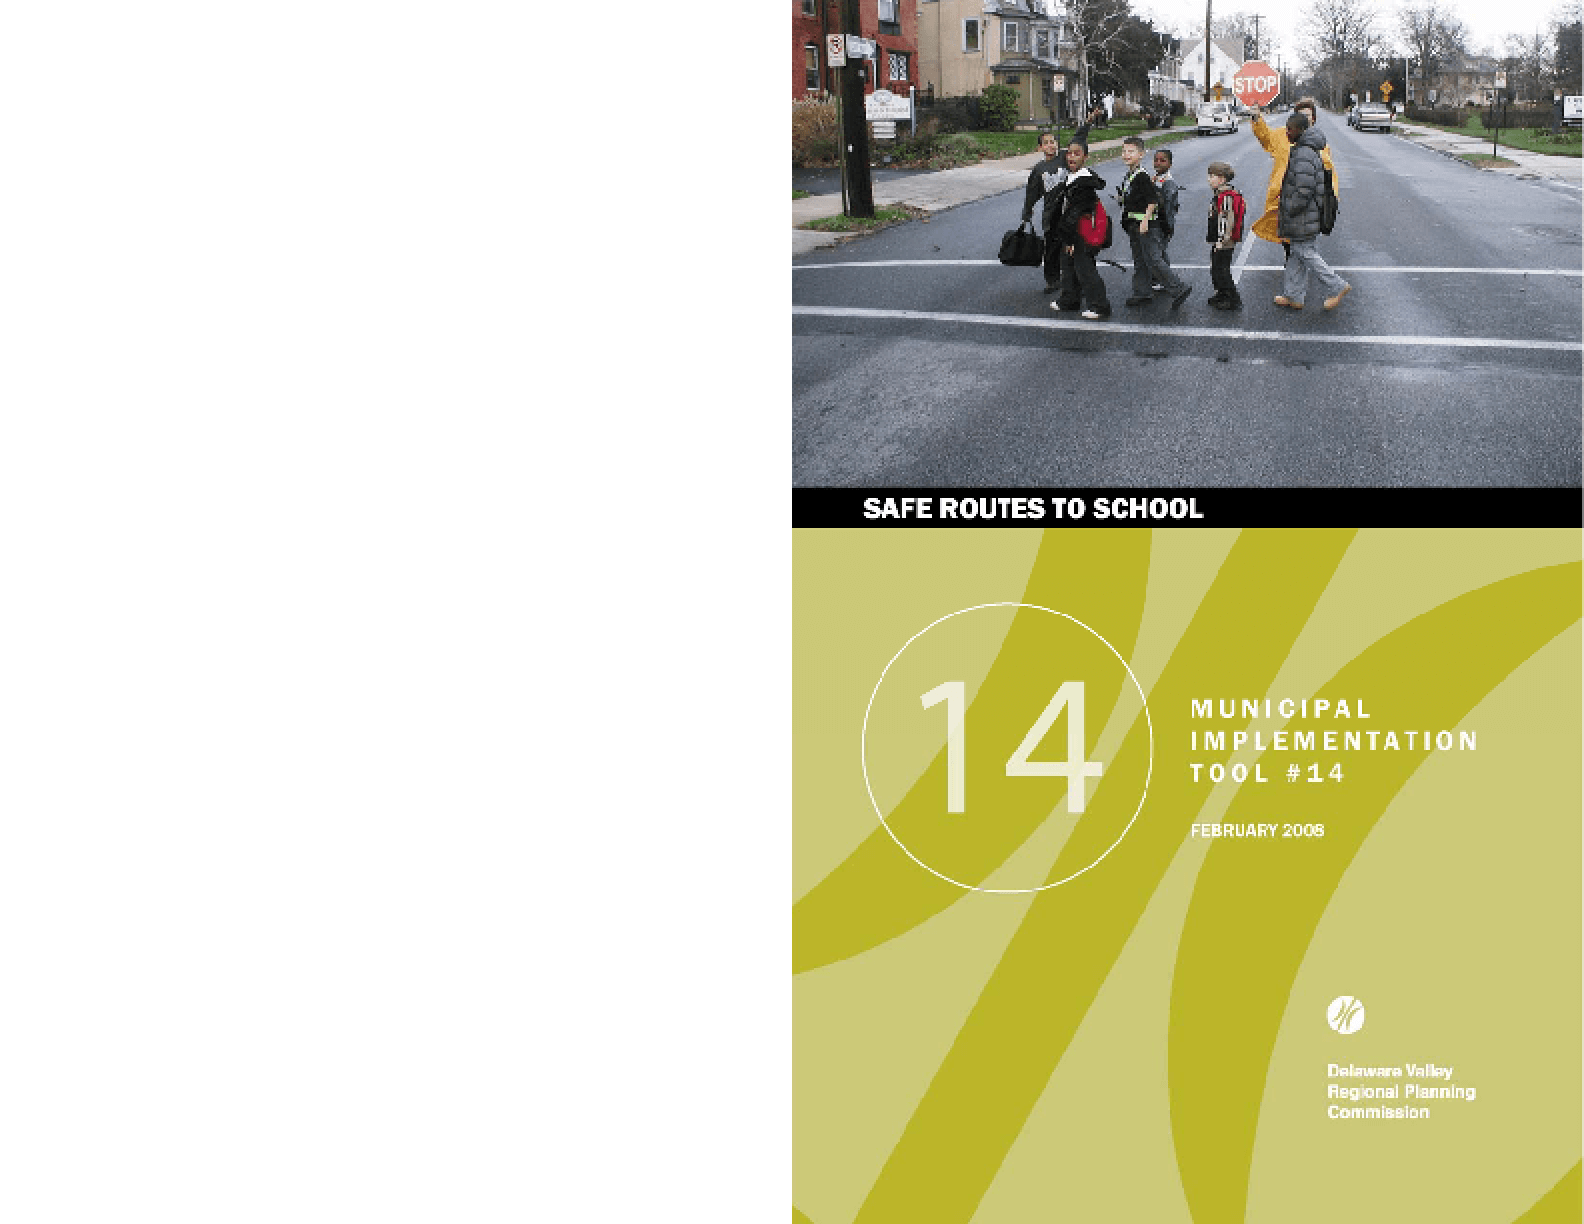 Municipal Implementation Tool 14: Safe Routes to School